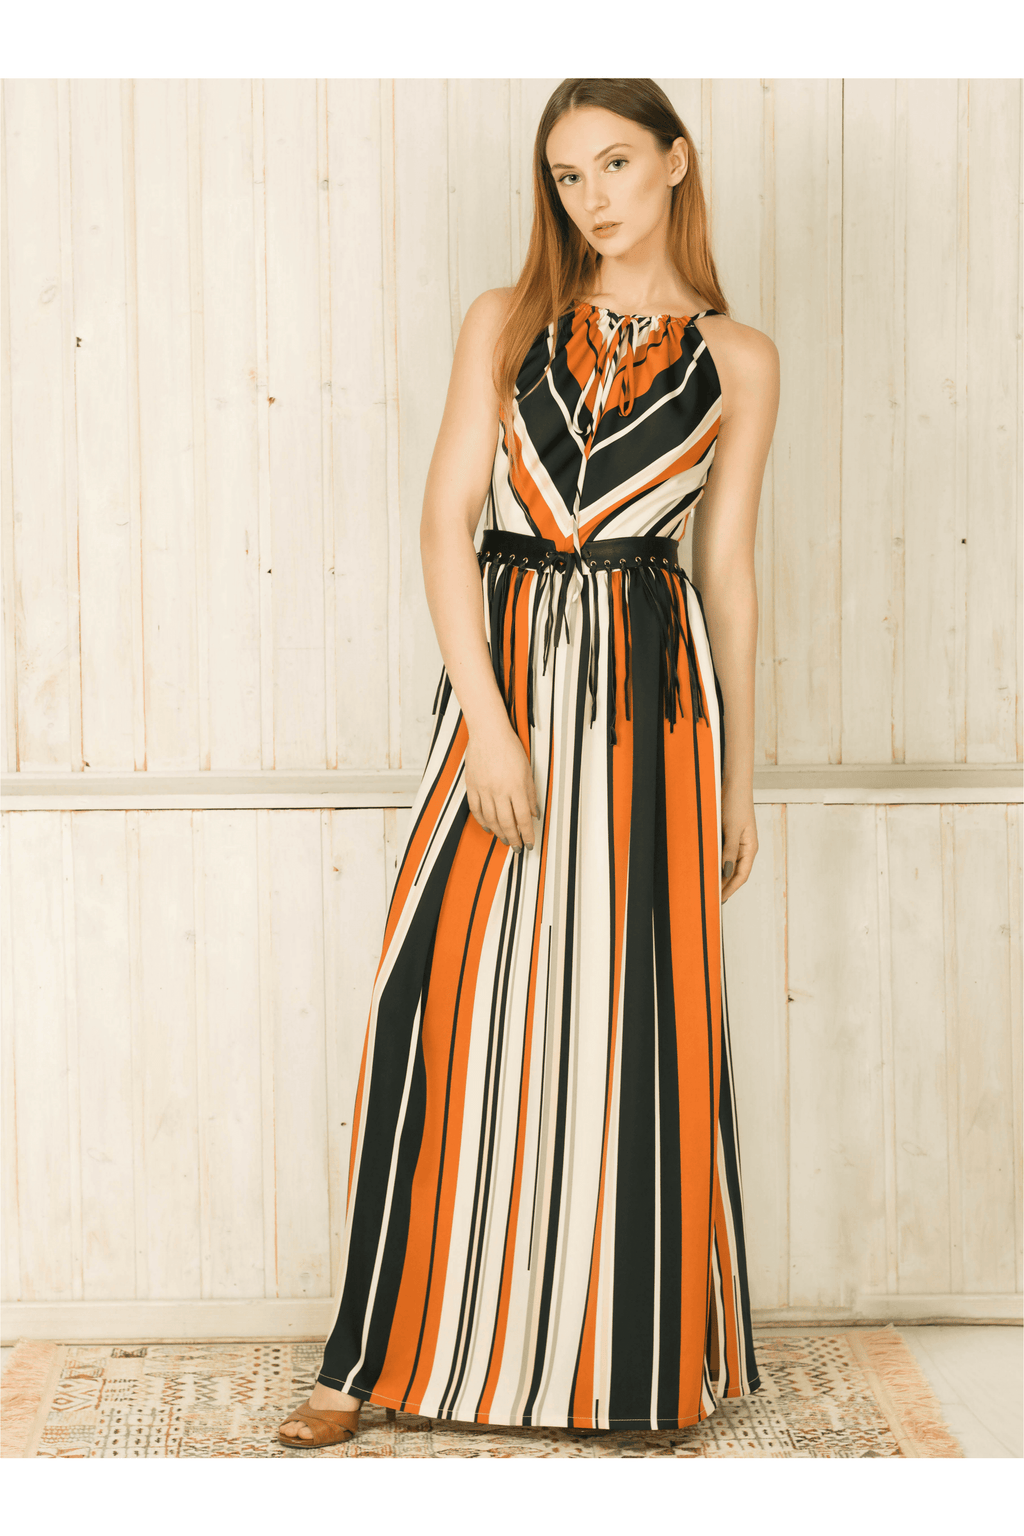 Sleeveless Striped Maxi Strap Dress - Himelhoch's